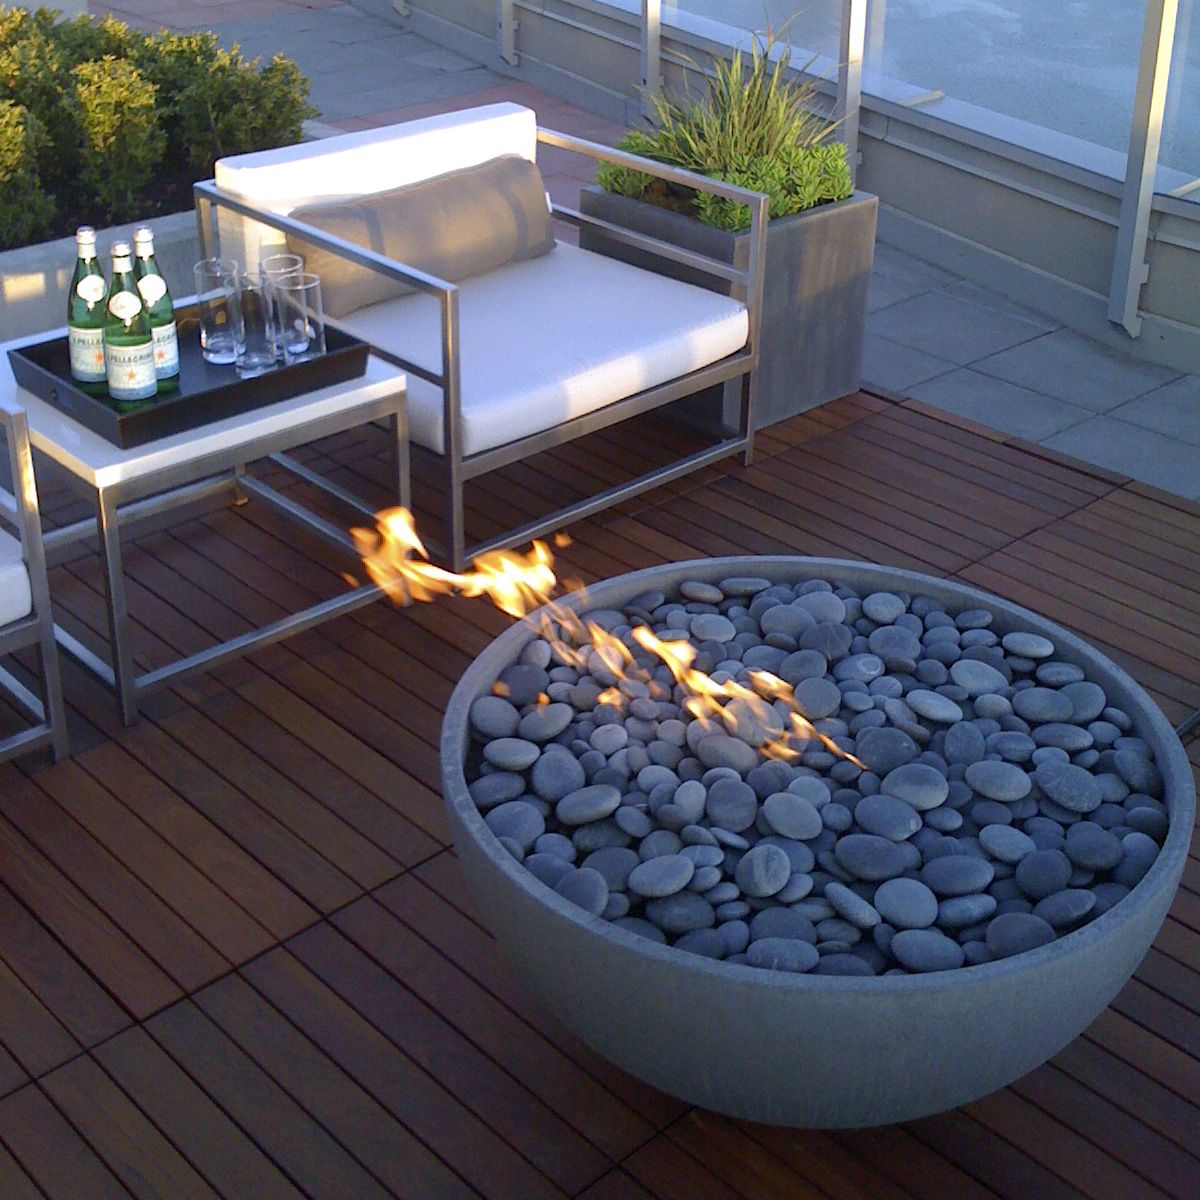 The Solus 48 Hemi Firebowl Stands At 23 25 Tall 48 Across And Available As Natural Gas 75 000 Btus O Rooftop Terrace Design Outdoor Fire Outdoor Fire Pit